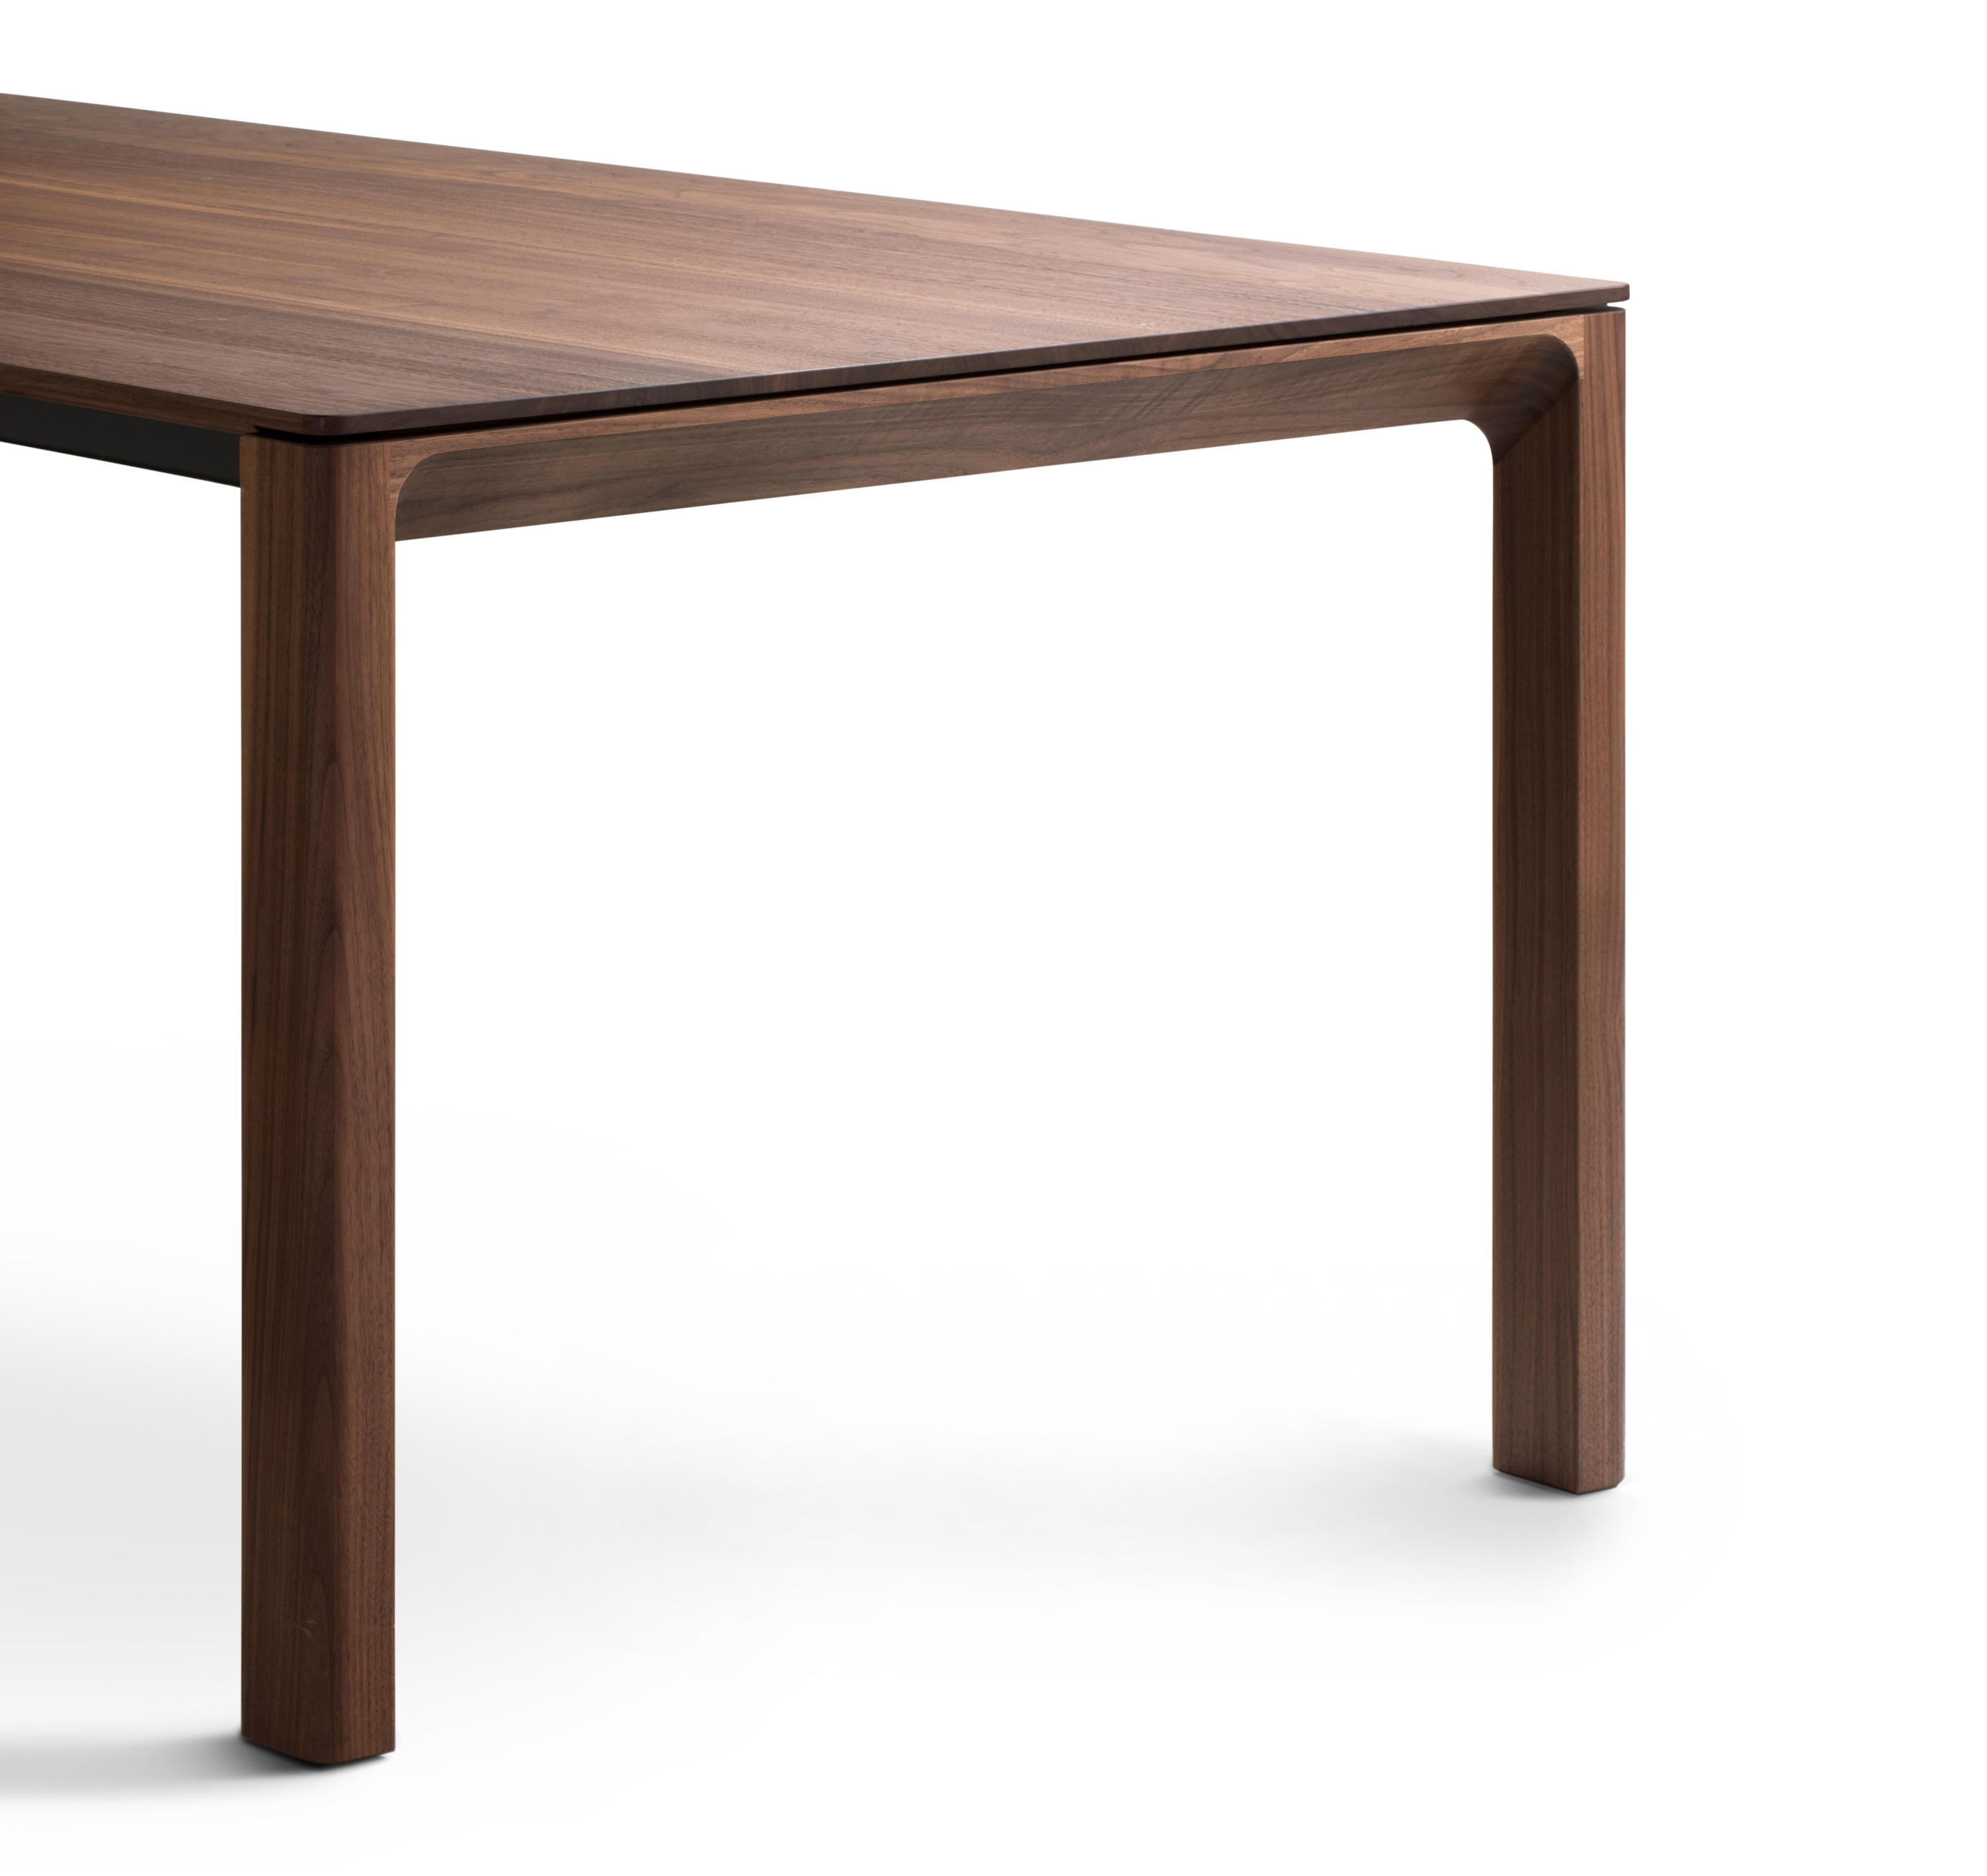 Habitat Esstische Porto Dining Table Dining Tables From Christine Kröncke